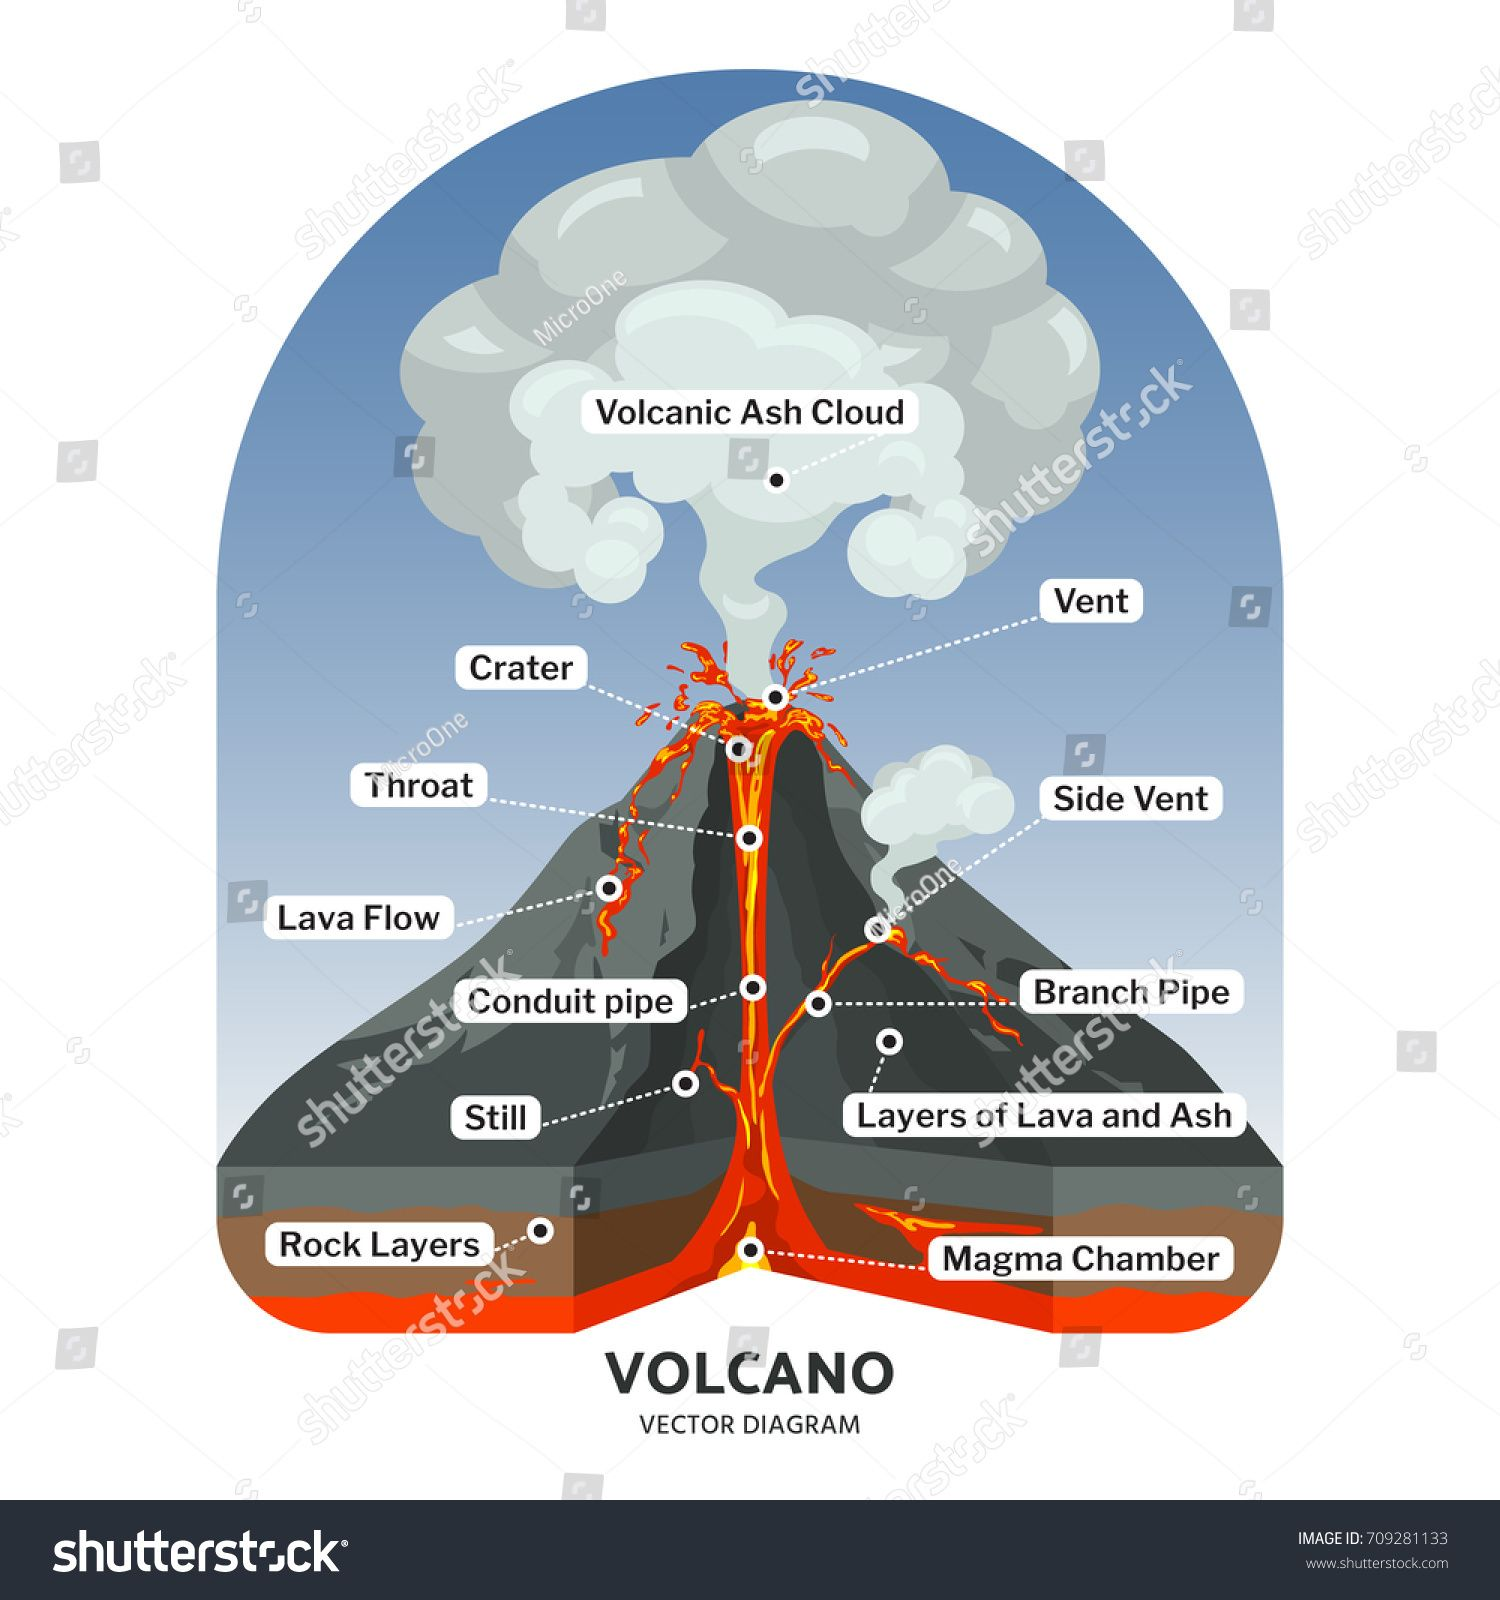 Volcano Cross Section With Hot Lava And Volcanic Ash Cloud Vector Diagram Illustration Of Volcano Mountain Volcano Science Projects Volcano Volcano Projects